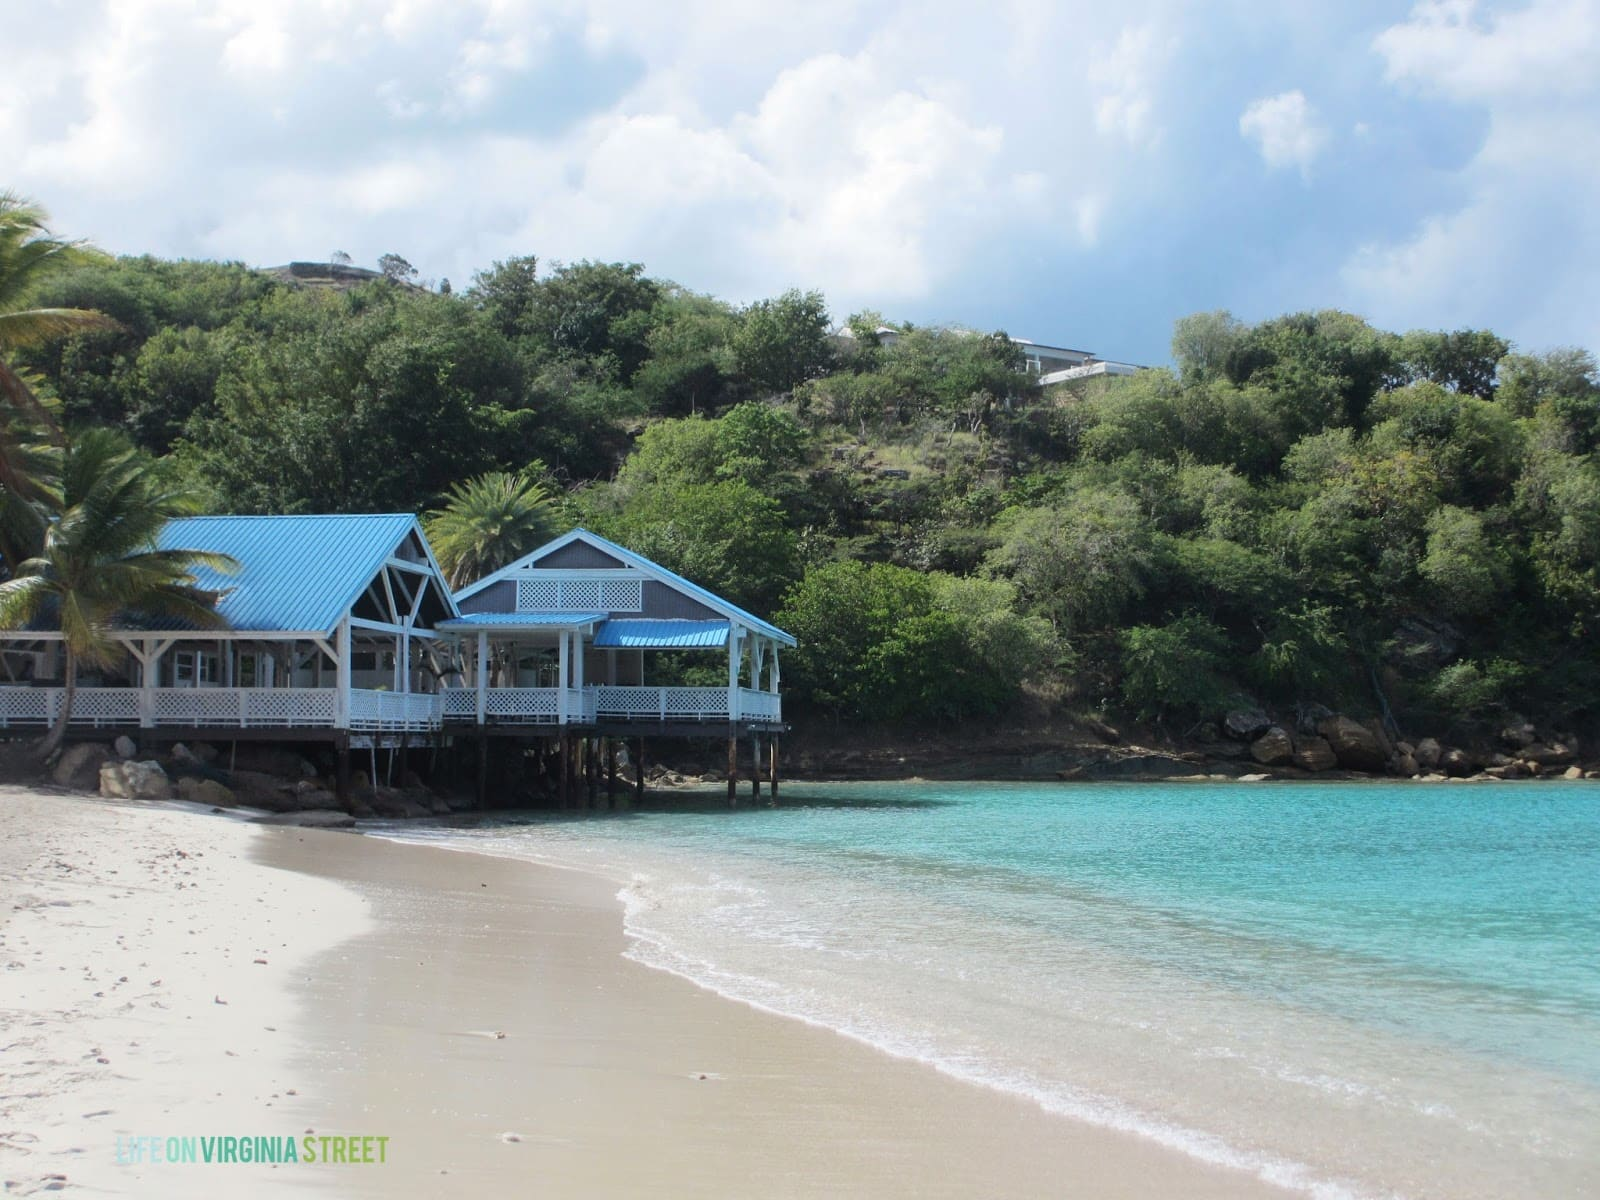 A house on stilts by the shore in the Caribbean.